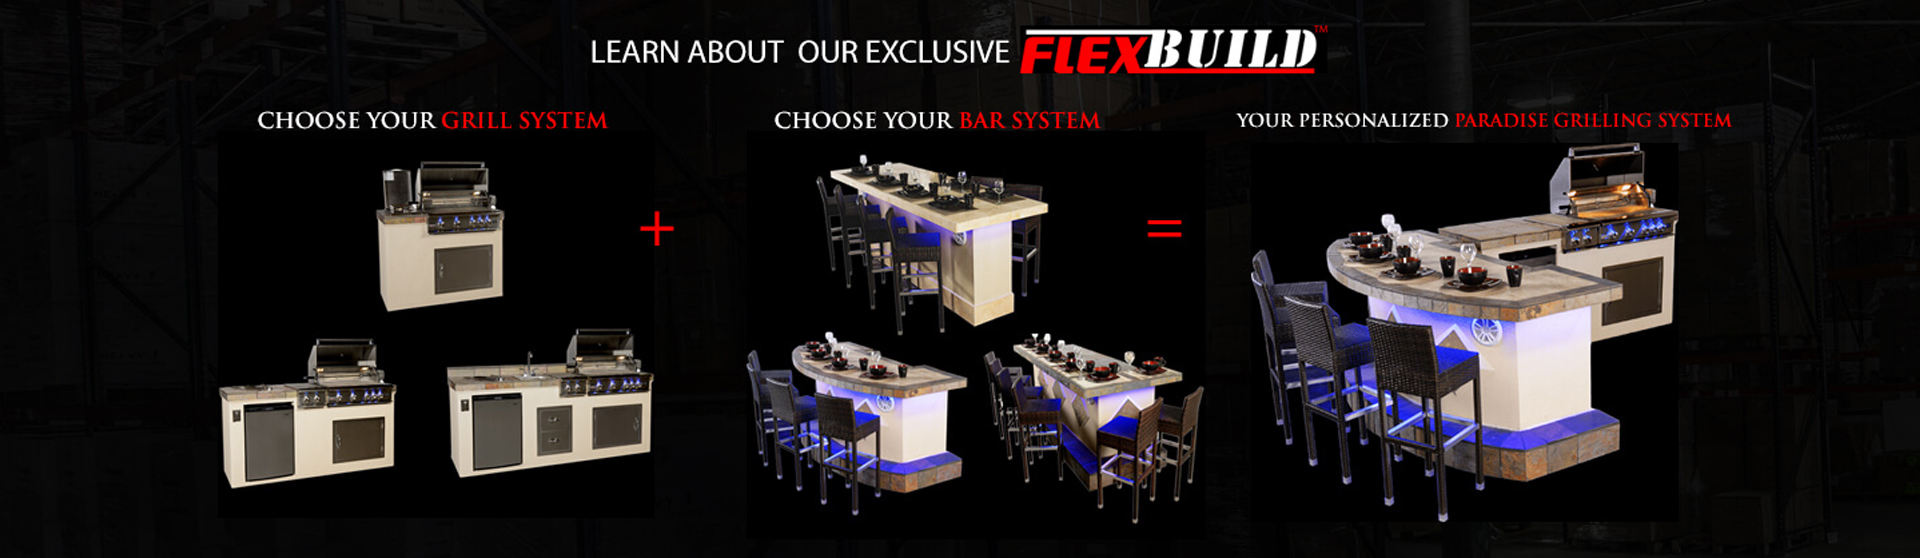 Paradise Grilling Systems Exlcusive Flex Build